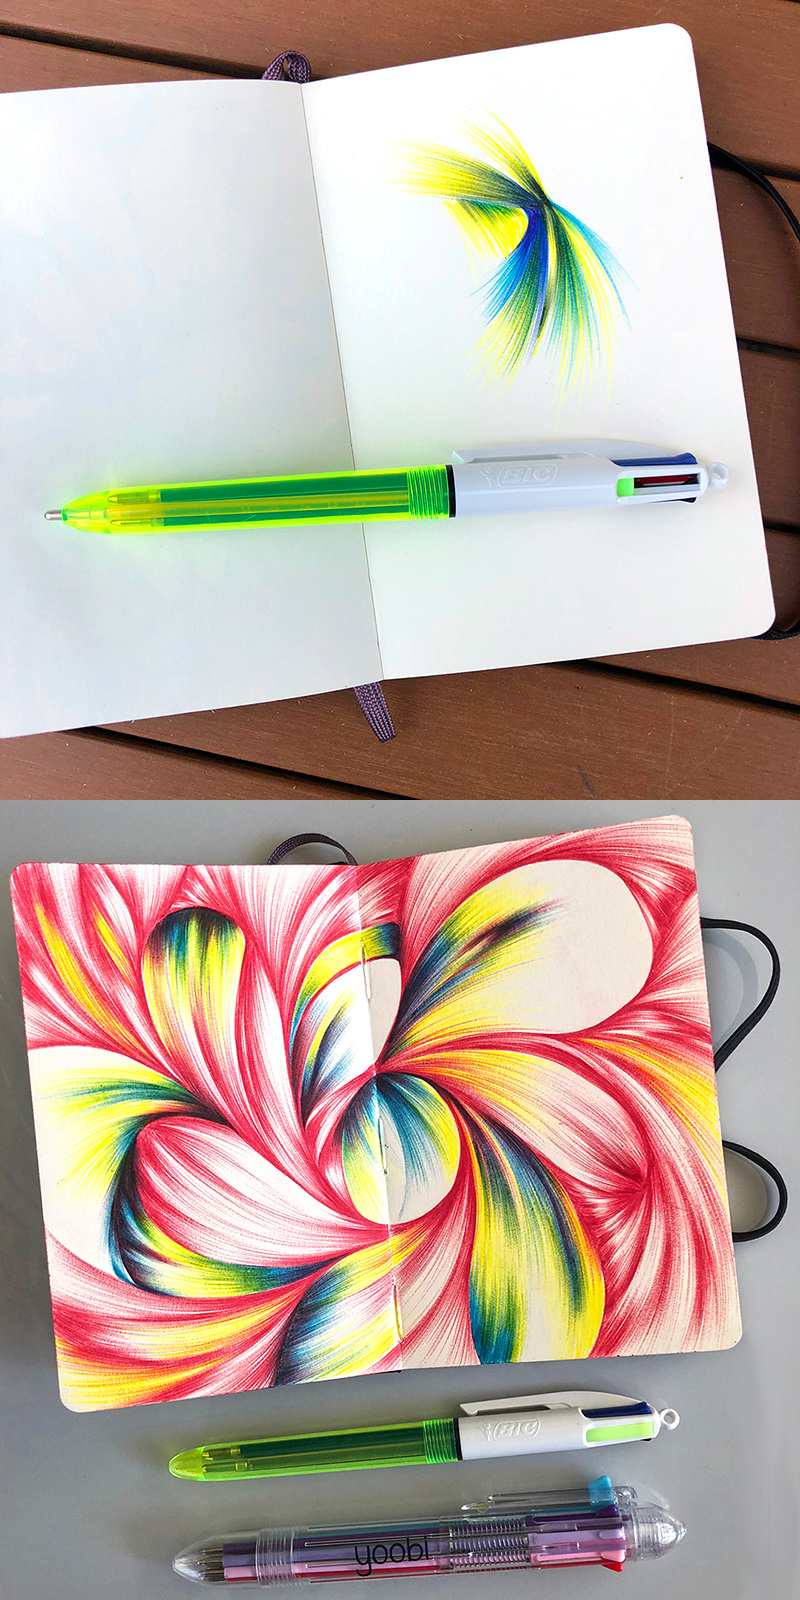 The yellow ink in the Bic pen is fluorescent and smooth as silk. Click to purchase.